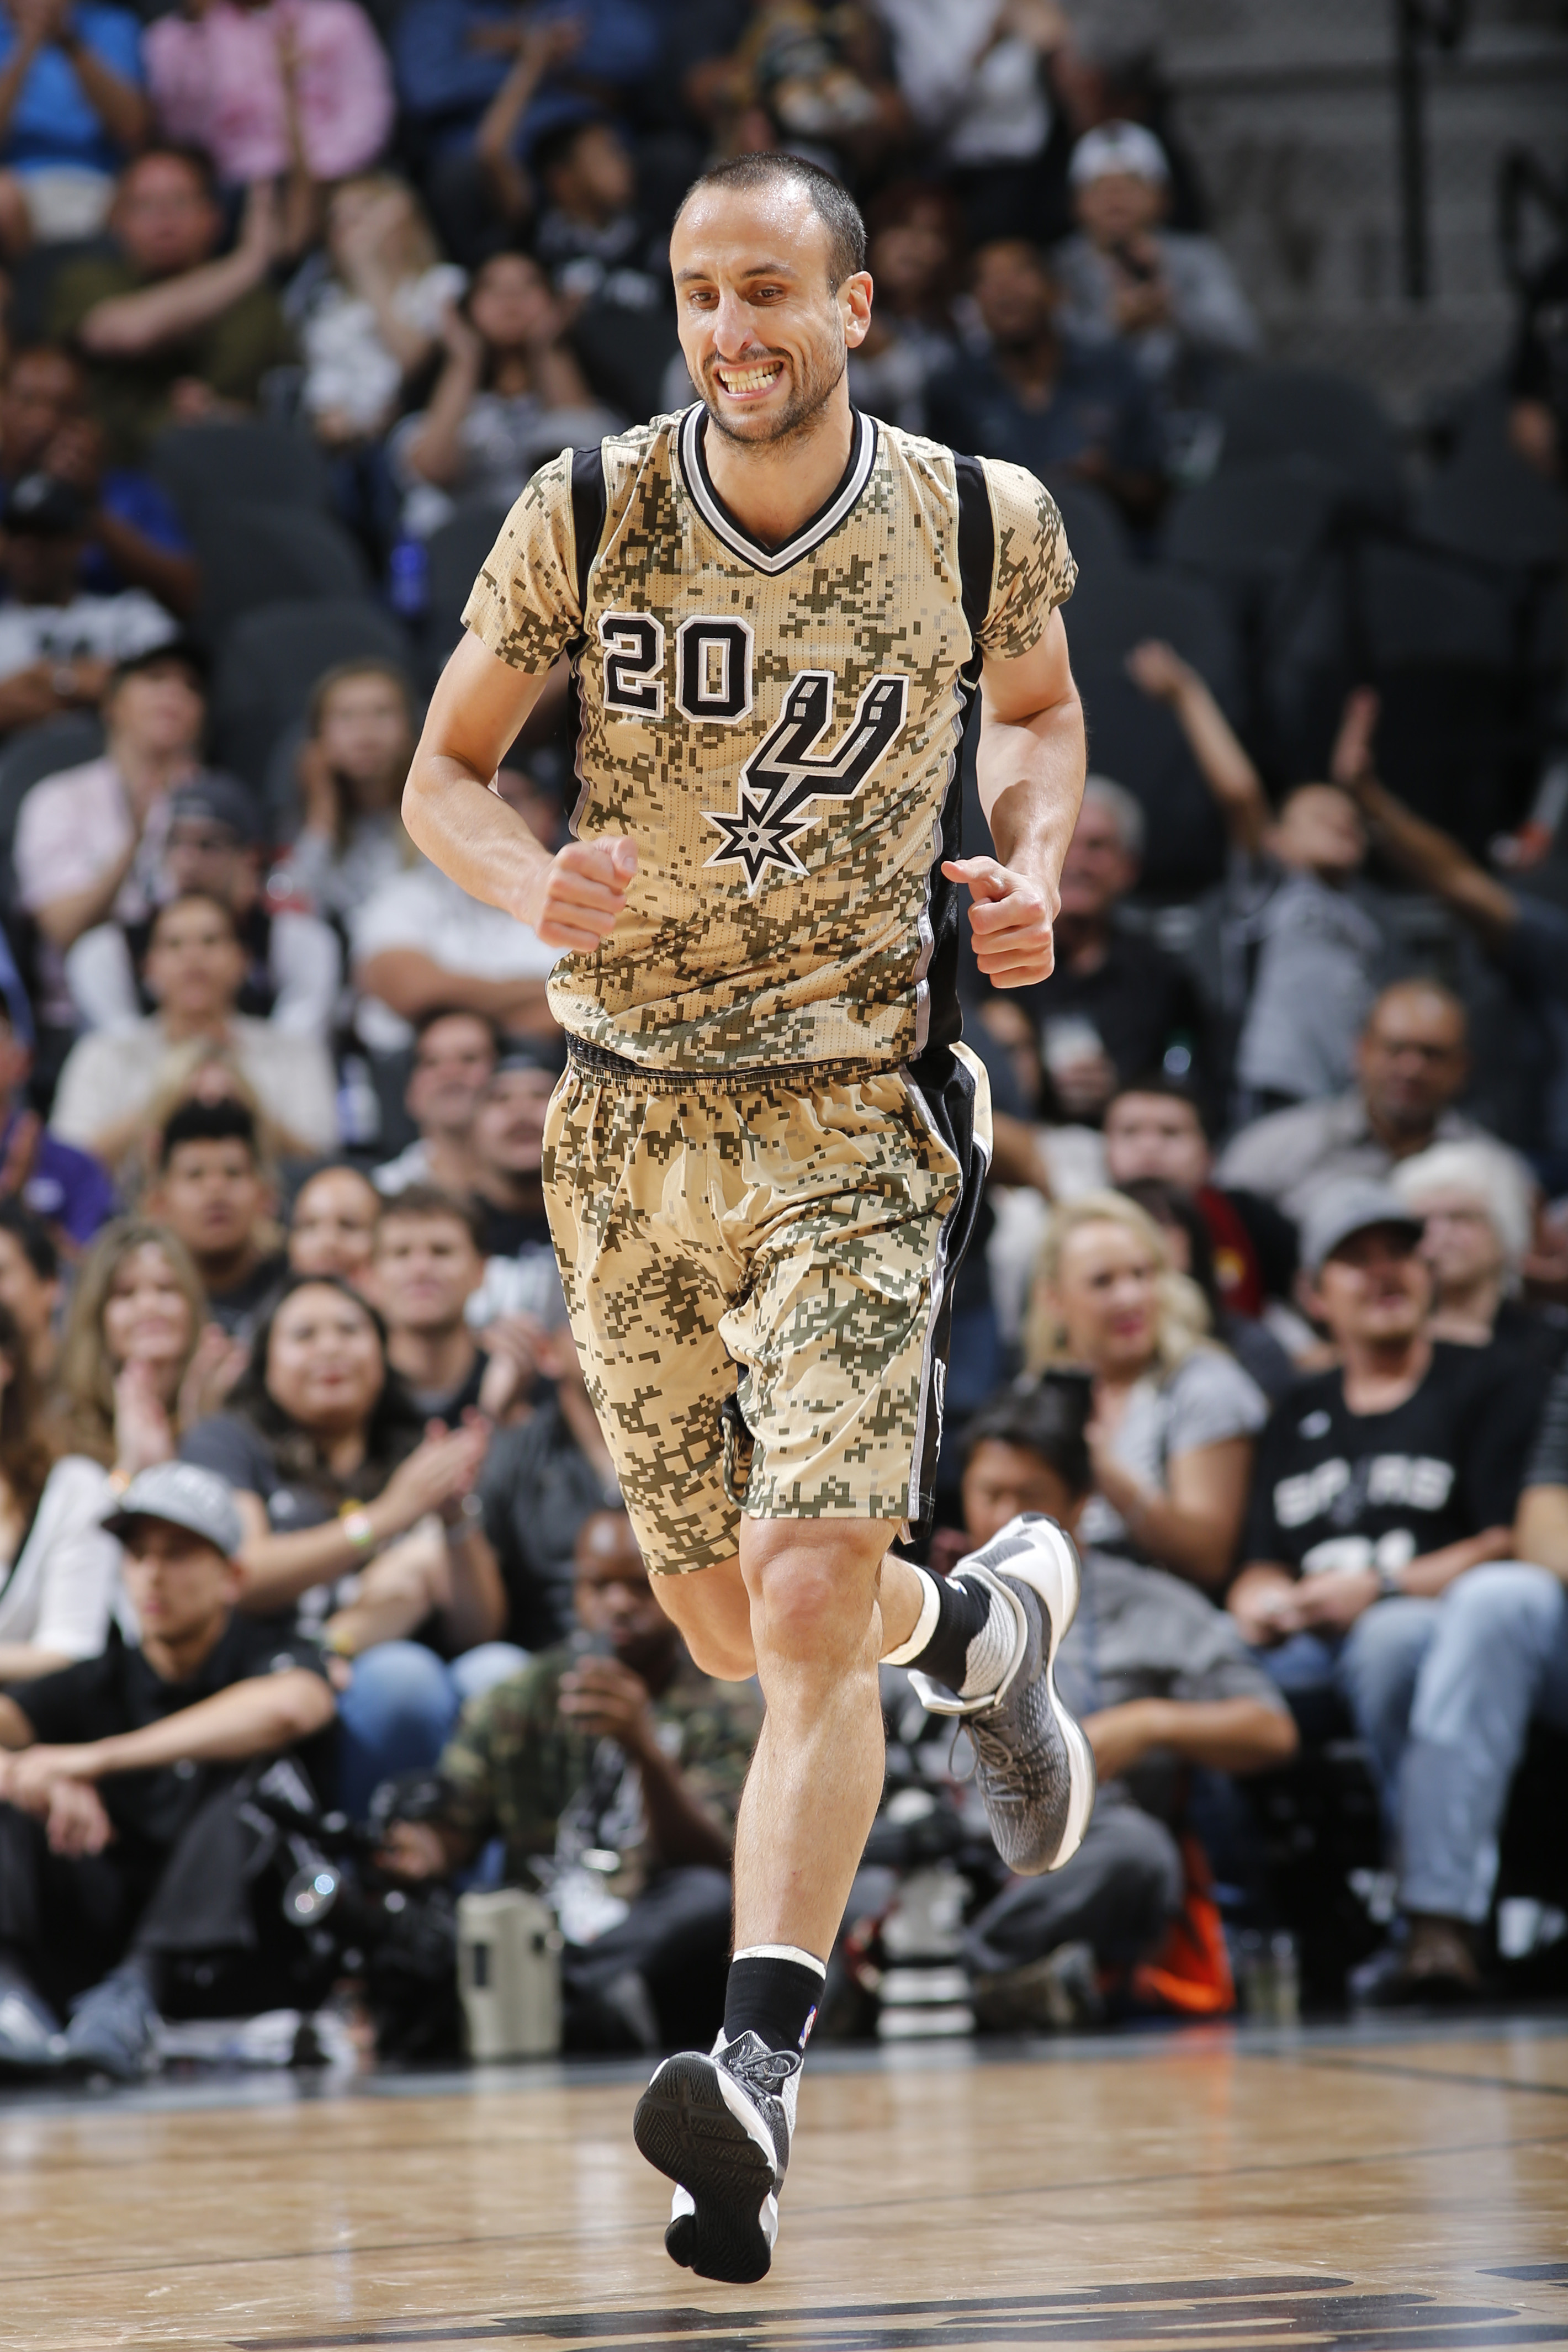 SAN ANTONIO, TX  - MARCH 23: Manu Ginobili #20 of the San Antonio Spurs runs up court against the Miami Heat during the game on March 23, 2016 at AT&T Center in San Antonio, Texas. (Photo by Chris Covatta/NBAE via Getty Images)